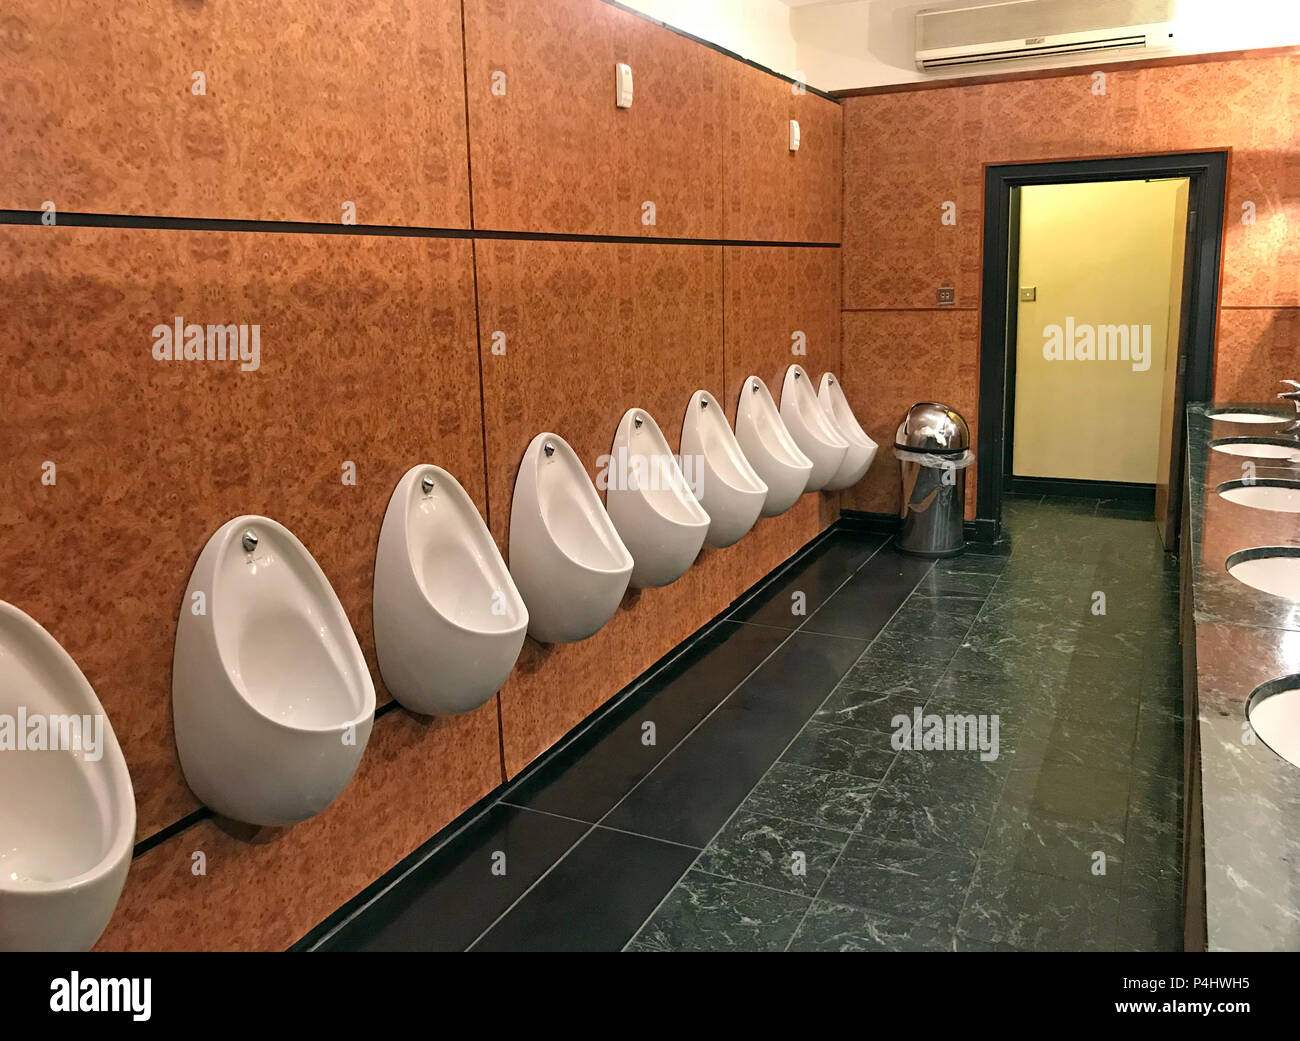 GoTonySmith,@HotpixUK,toilet,toilets,urinals,WC,line,of,leeds,fixture,for,pisspot,piss,pissing,waterless,water-less,sensor-operated,sensor